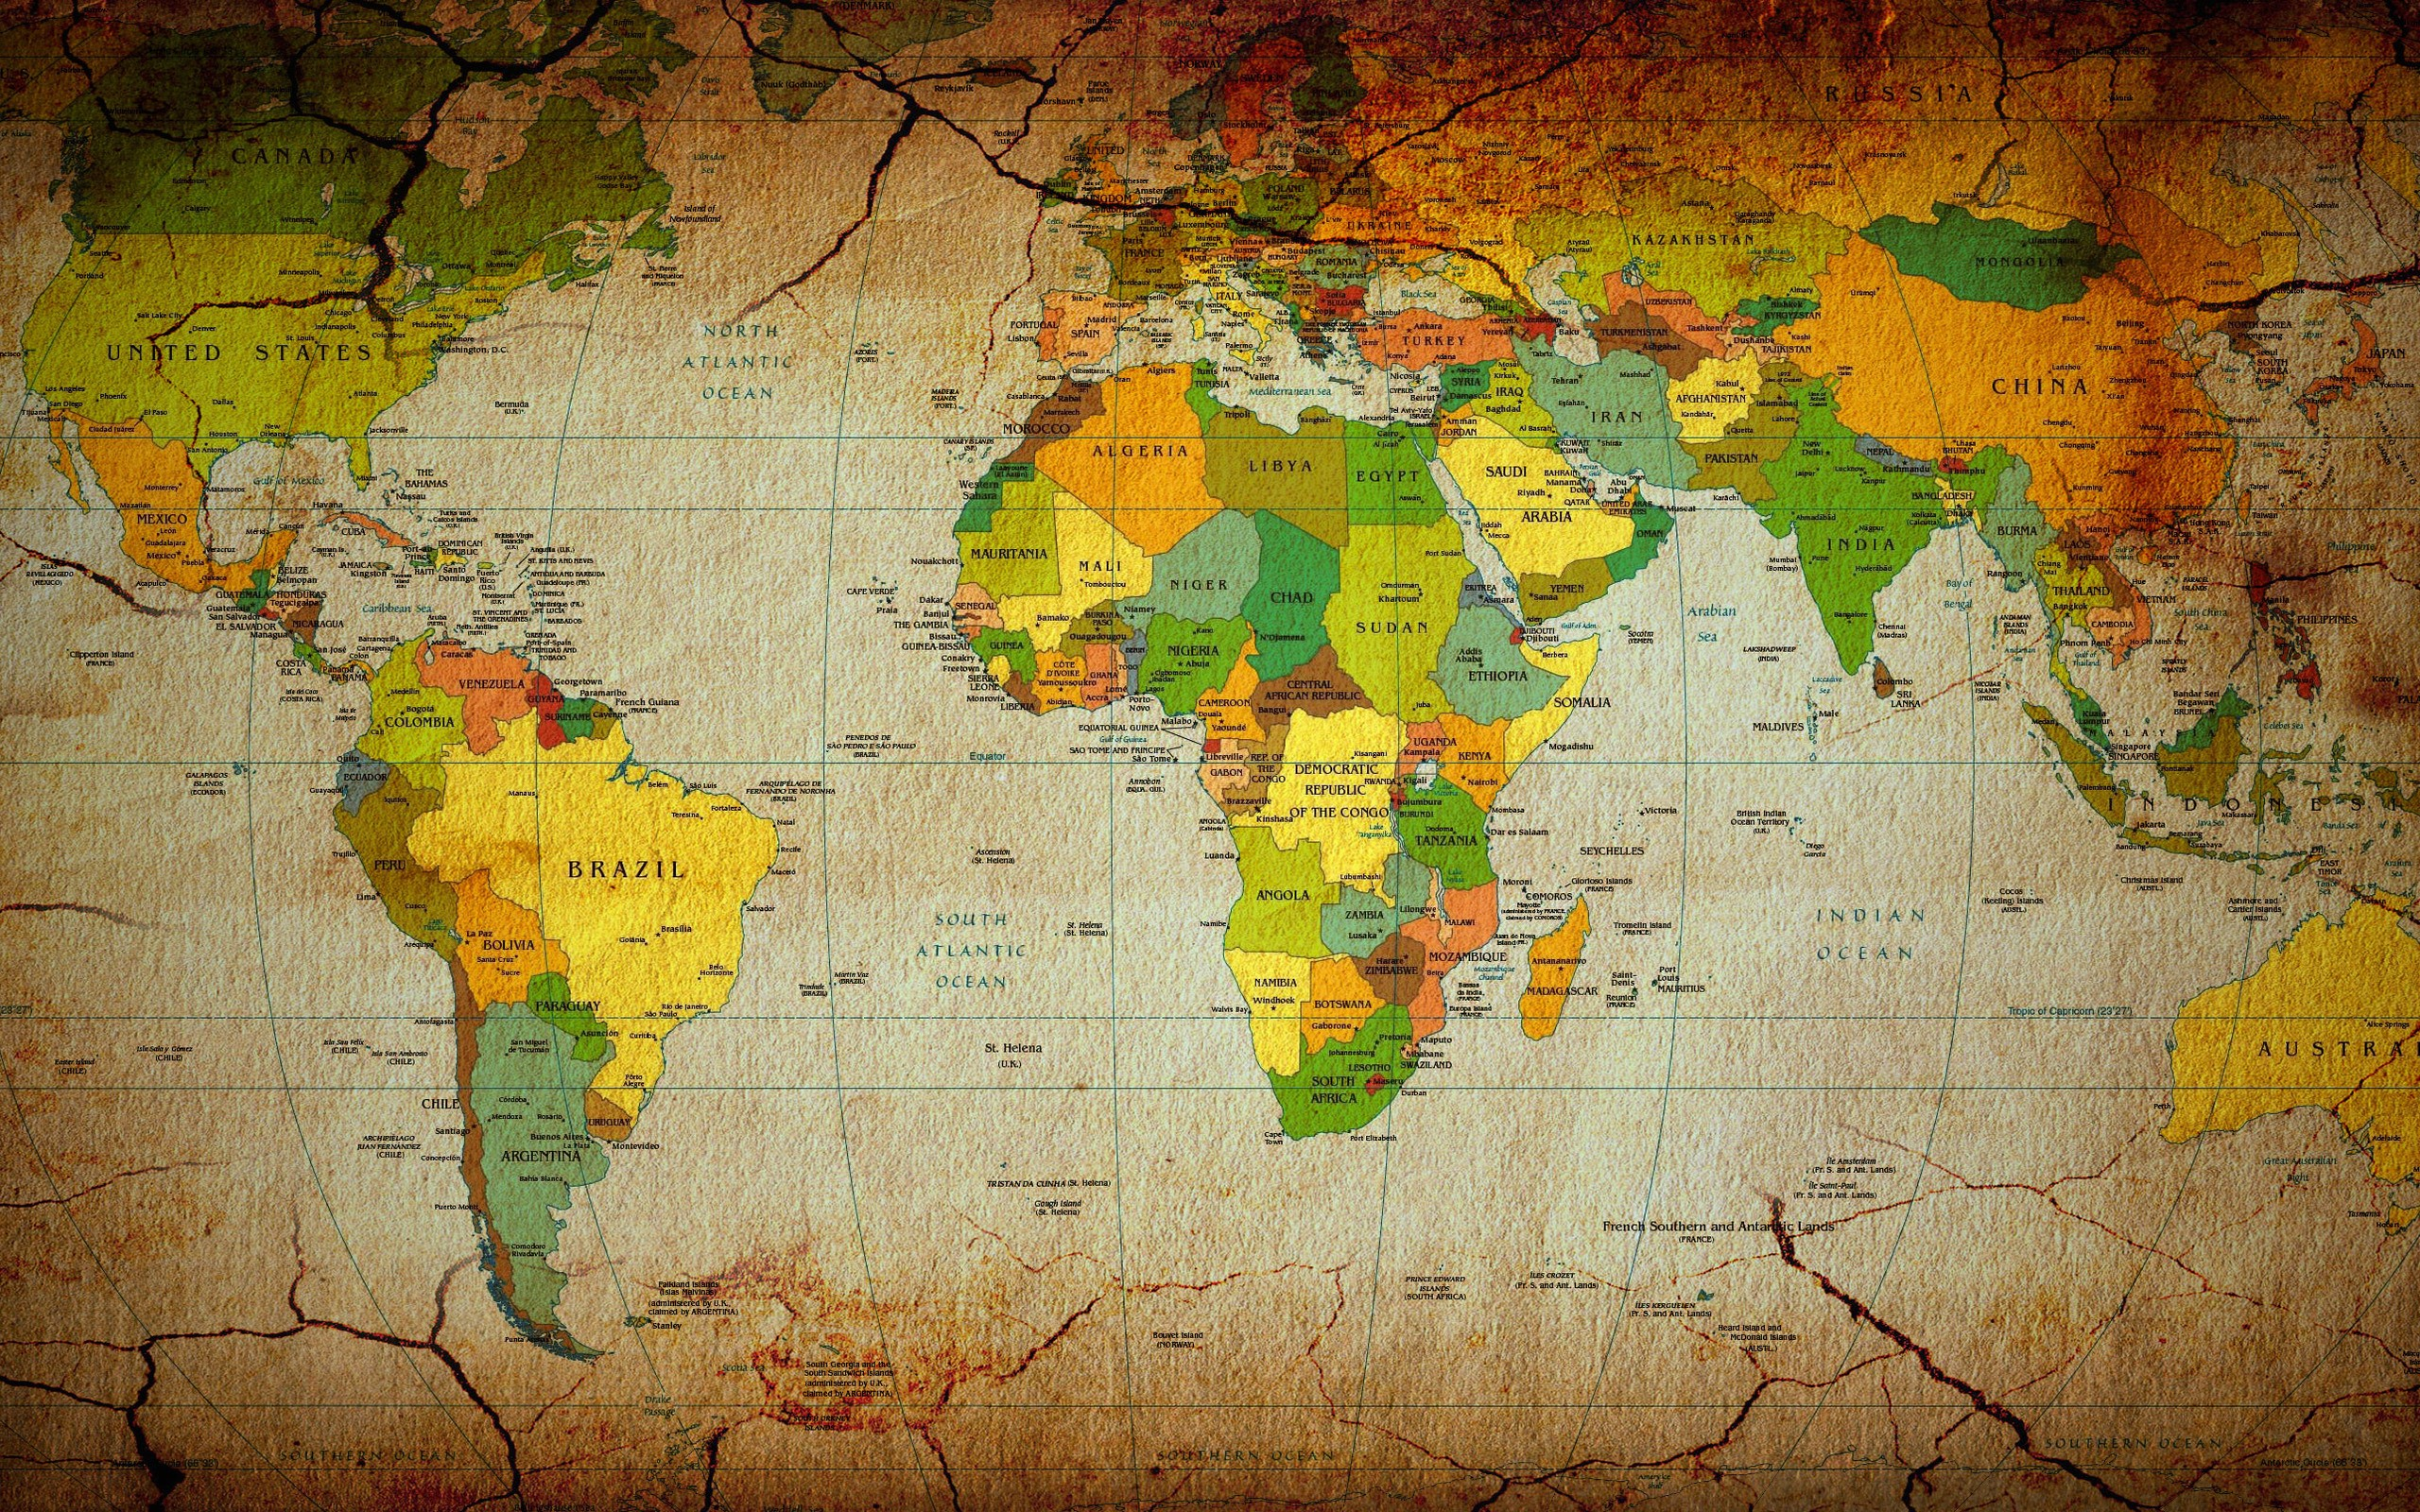 World map wallpaper 6254 2560x1600 px hdwallsource world map wallpaper 6254 gumiabroncs Images